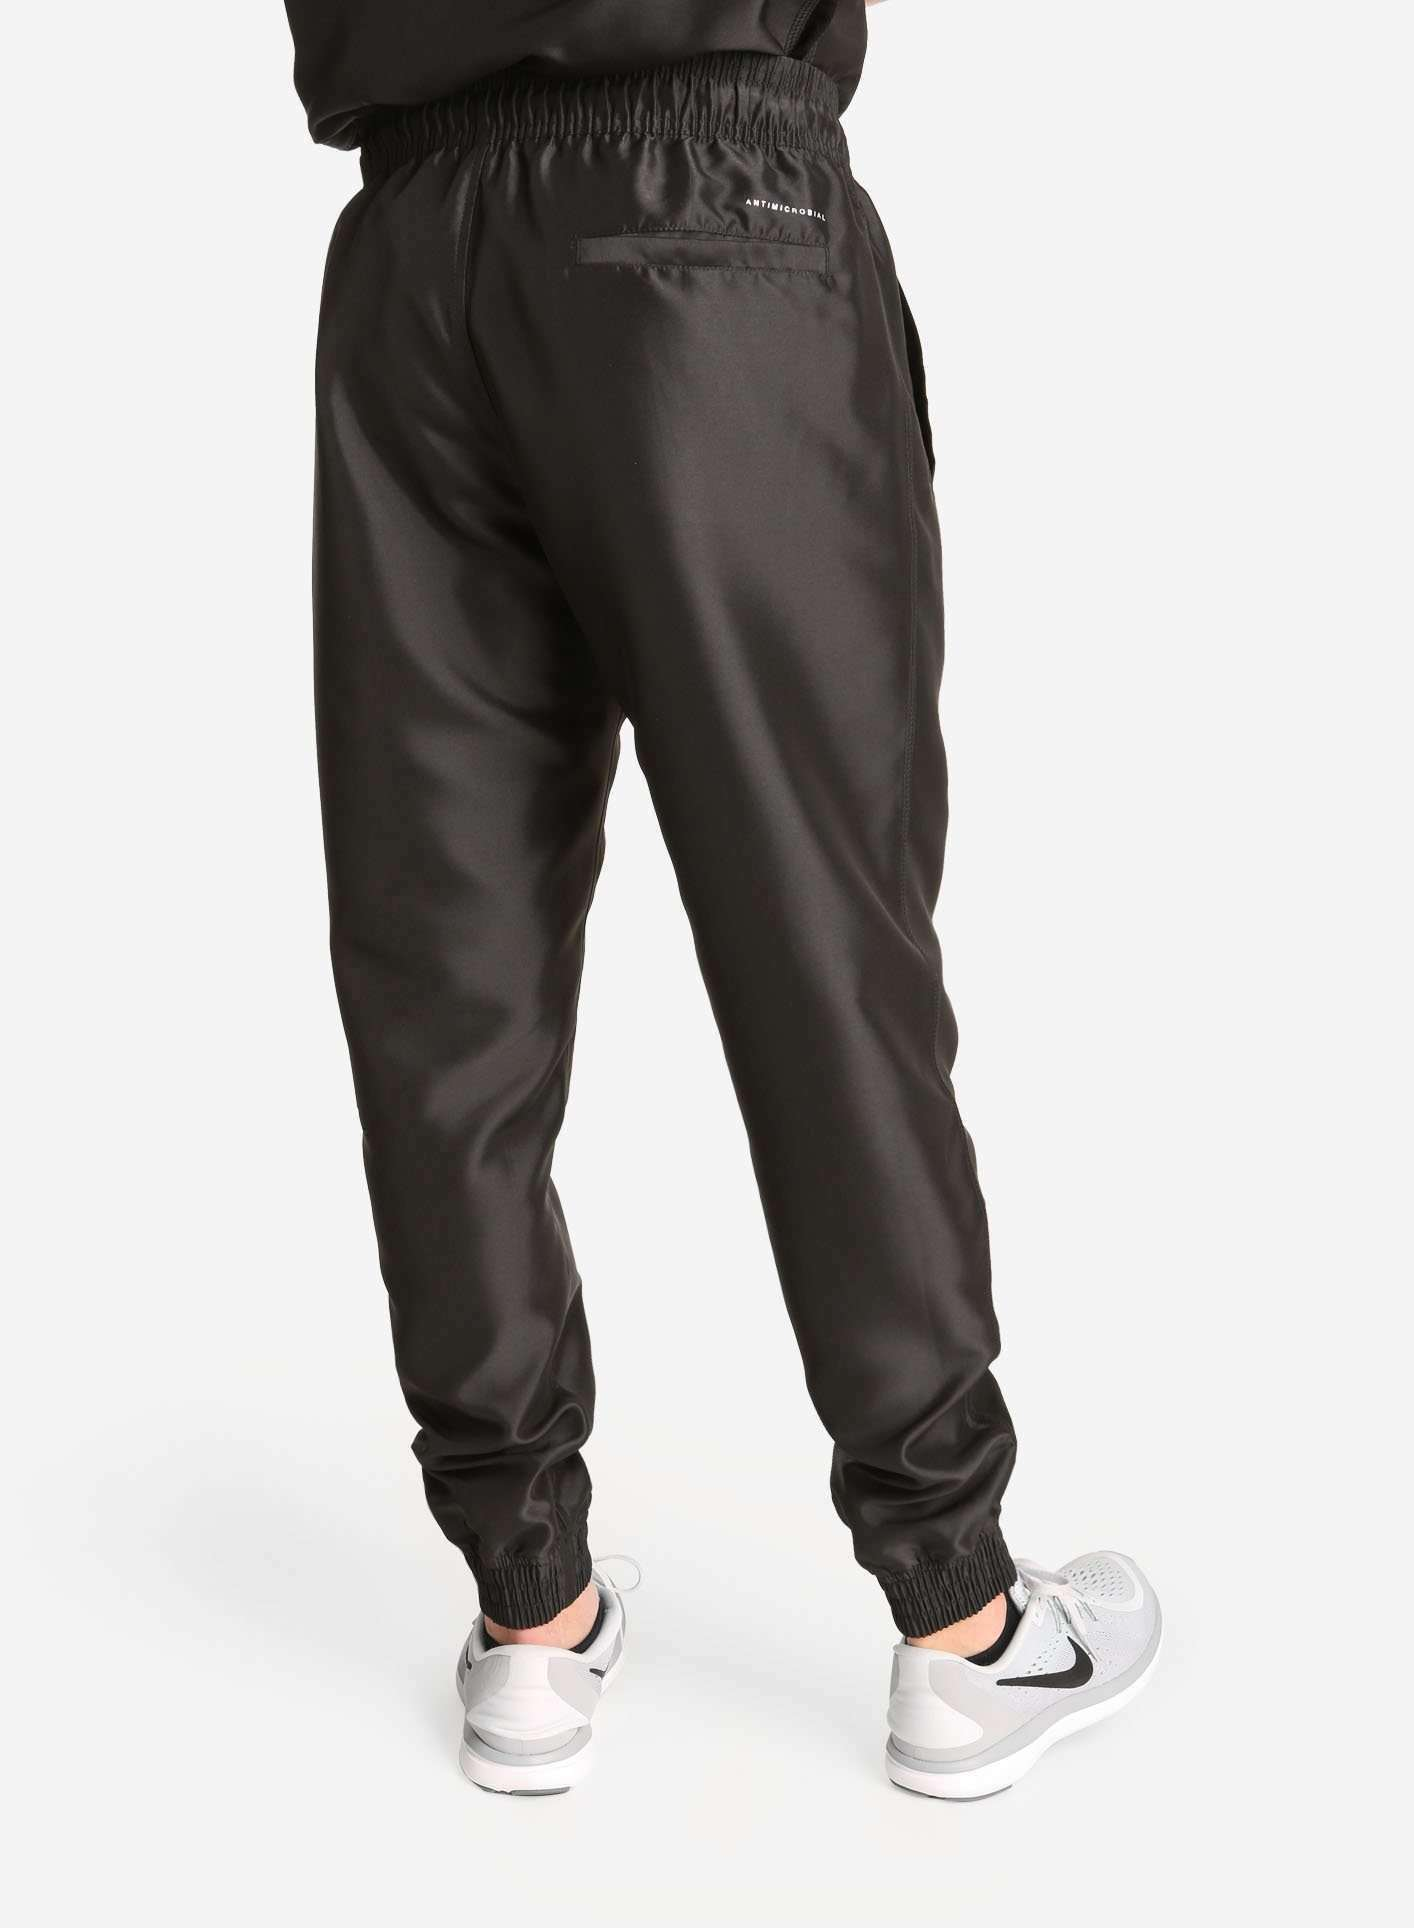 Men's Jogger Scrub Pants in Black Rear View